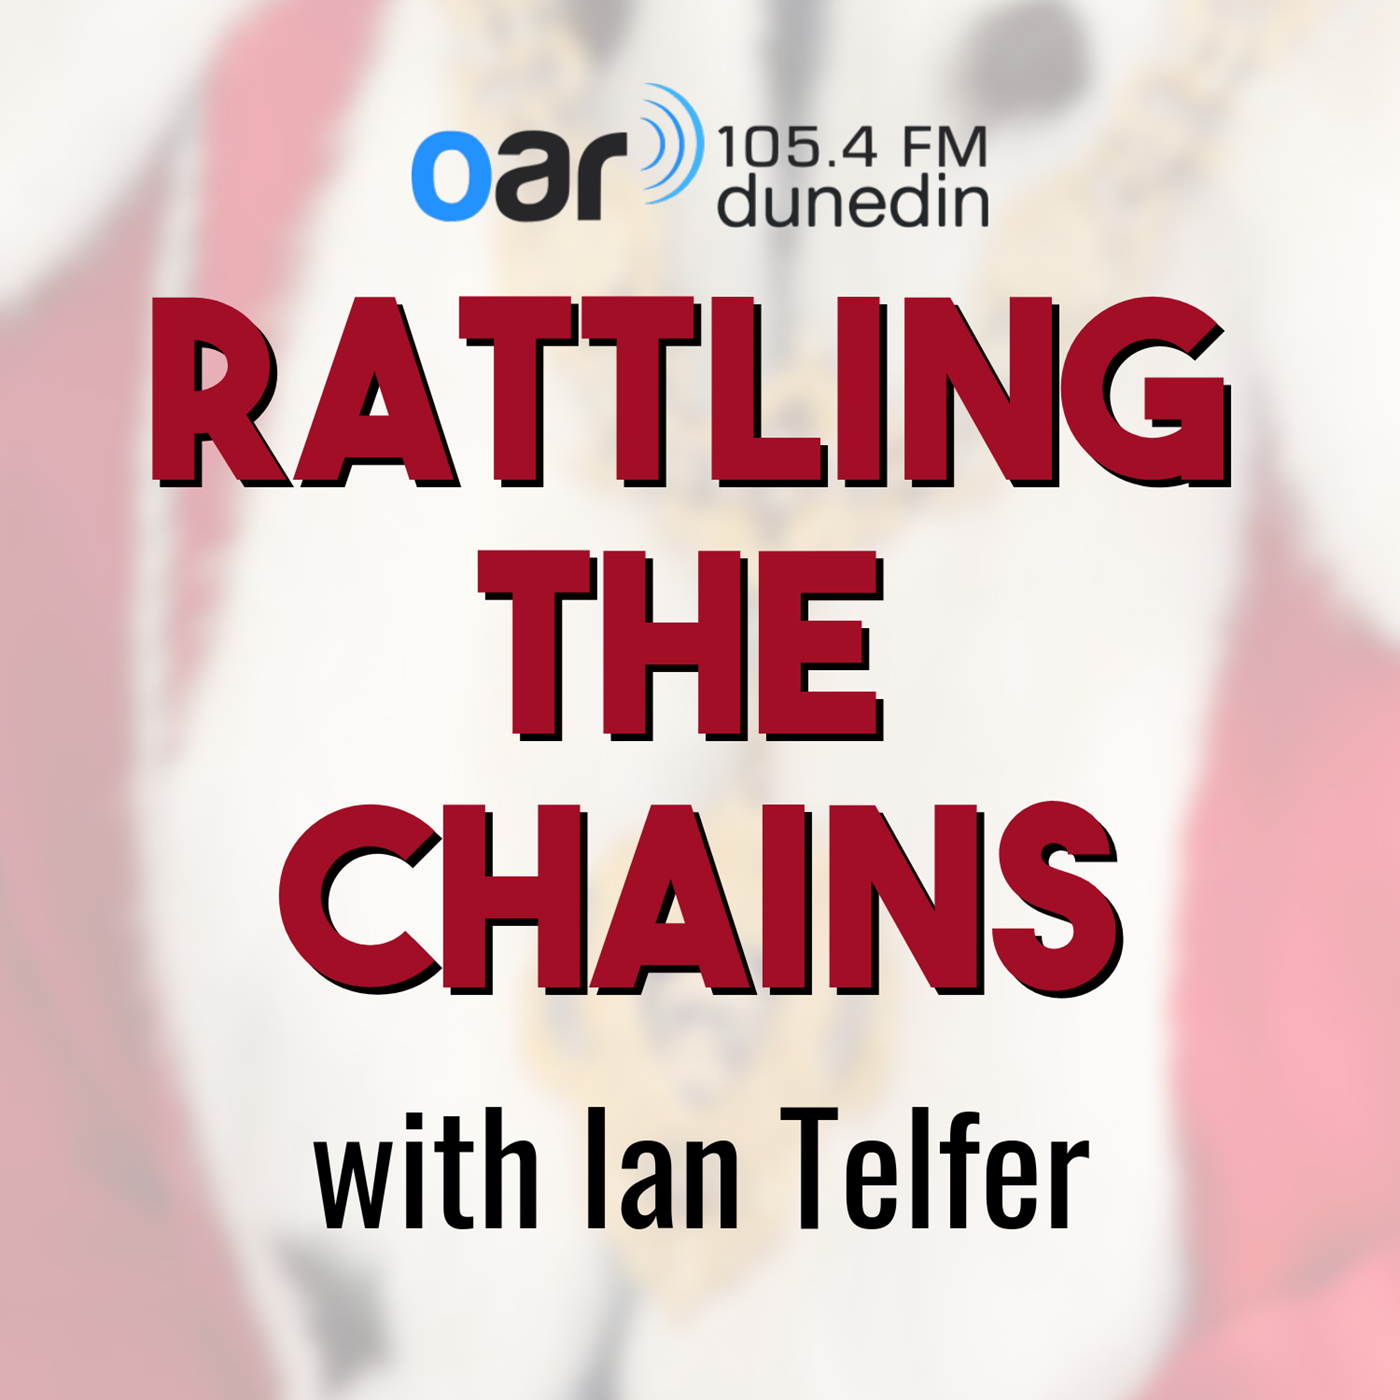 Rattling the Chains - 16-09-2019 - 06 - Jules Radich, Mandy Mayheim-Bullock and Scout Barbour-Evans